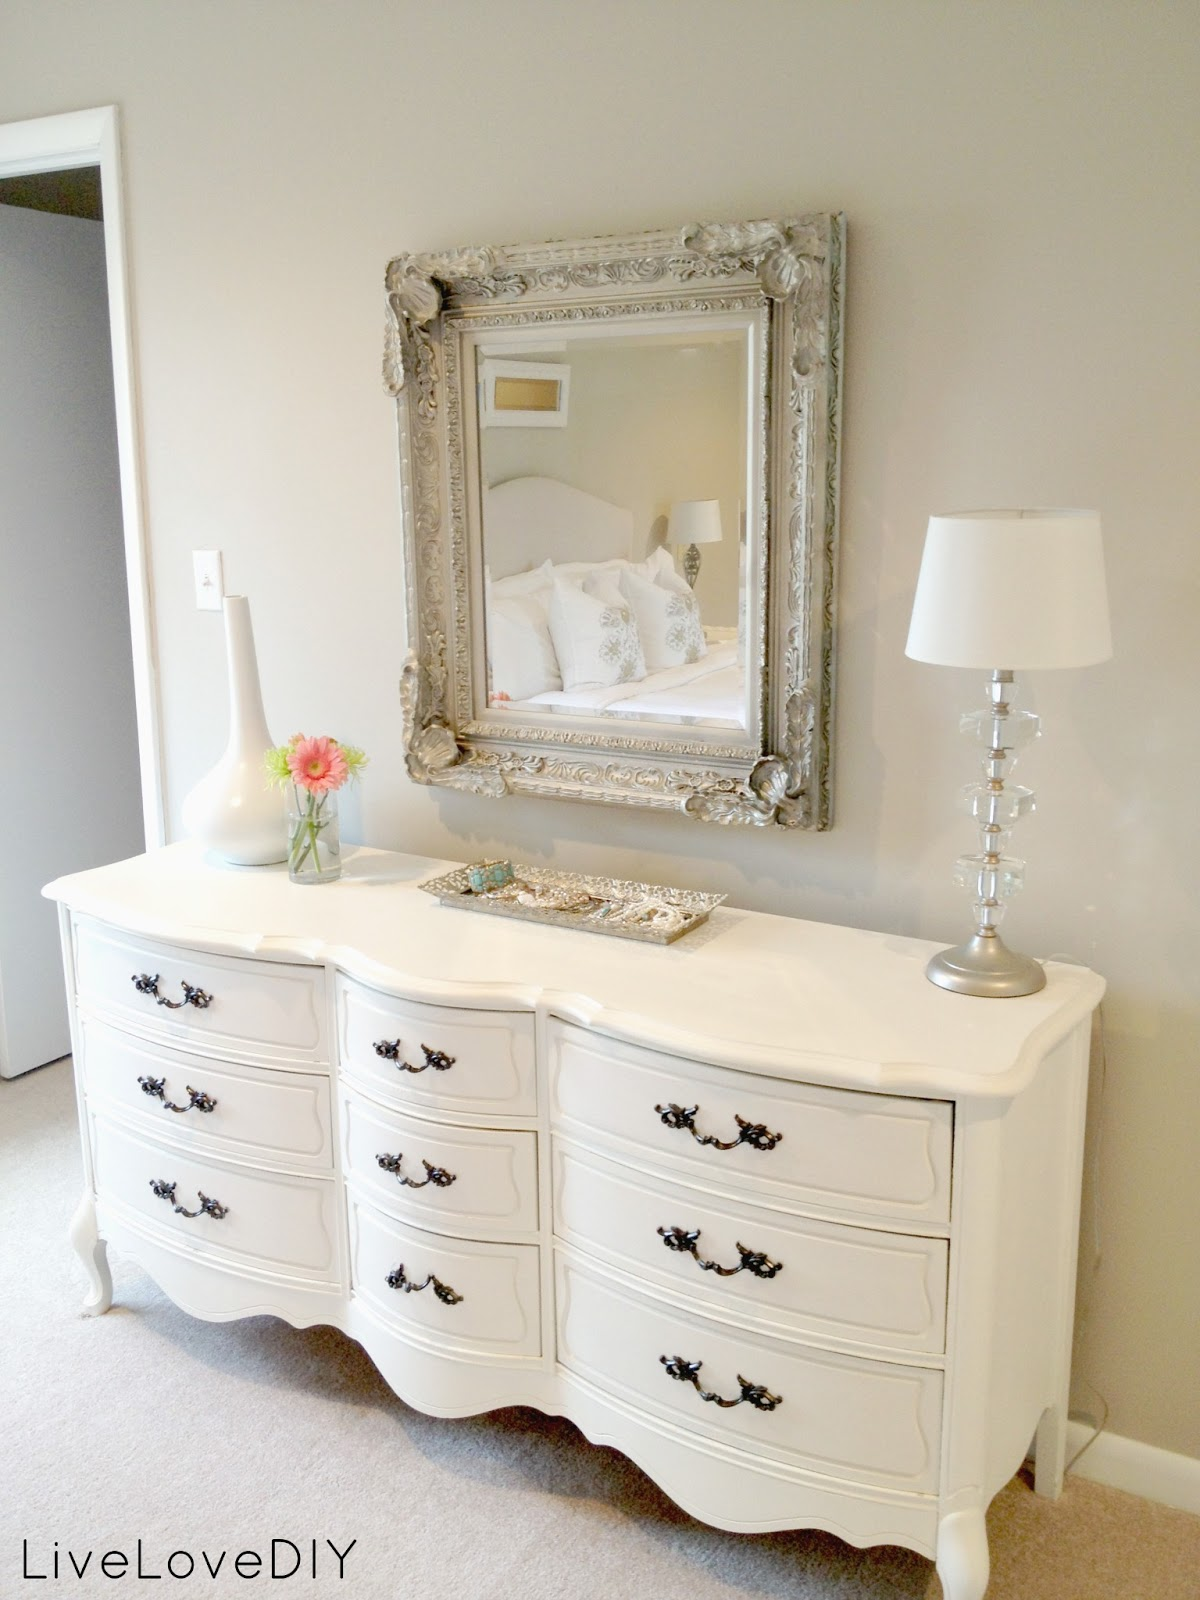 LiveLoveDIY: Master Bedroom Updates!